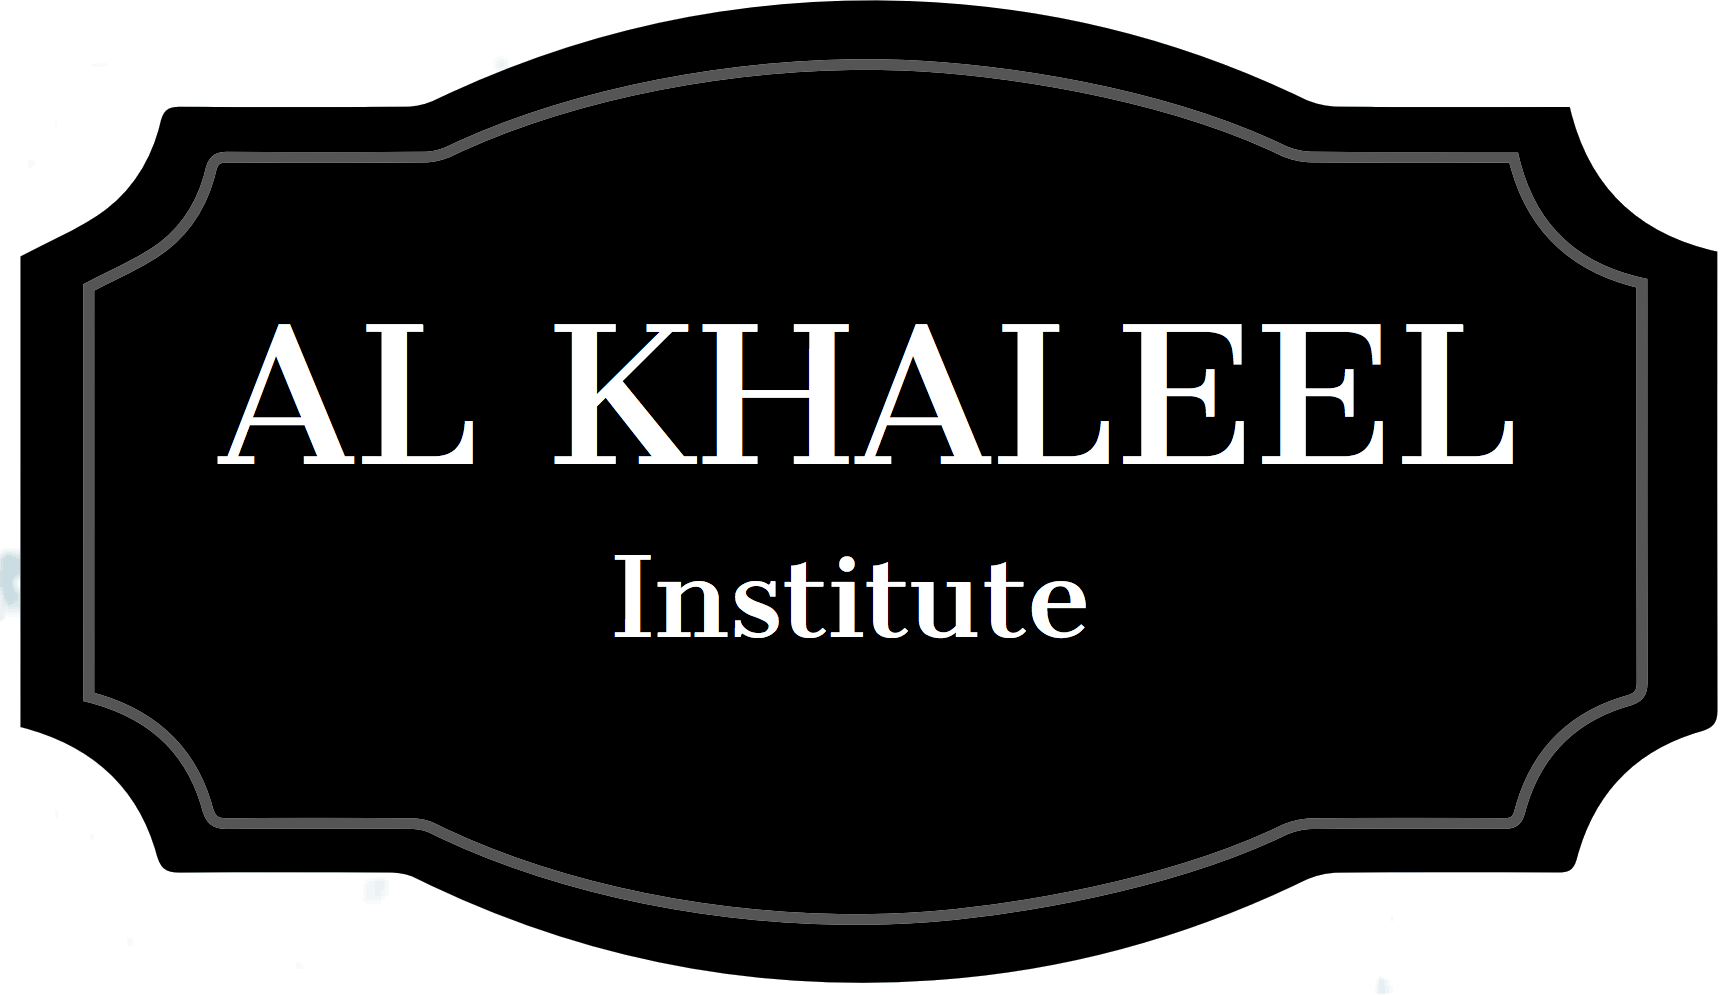 Al Khaleel Institute